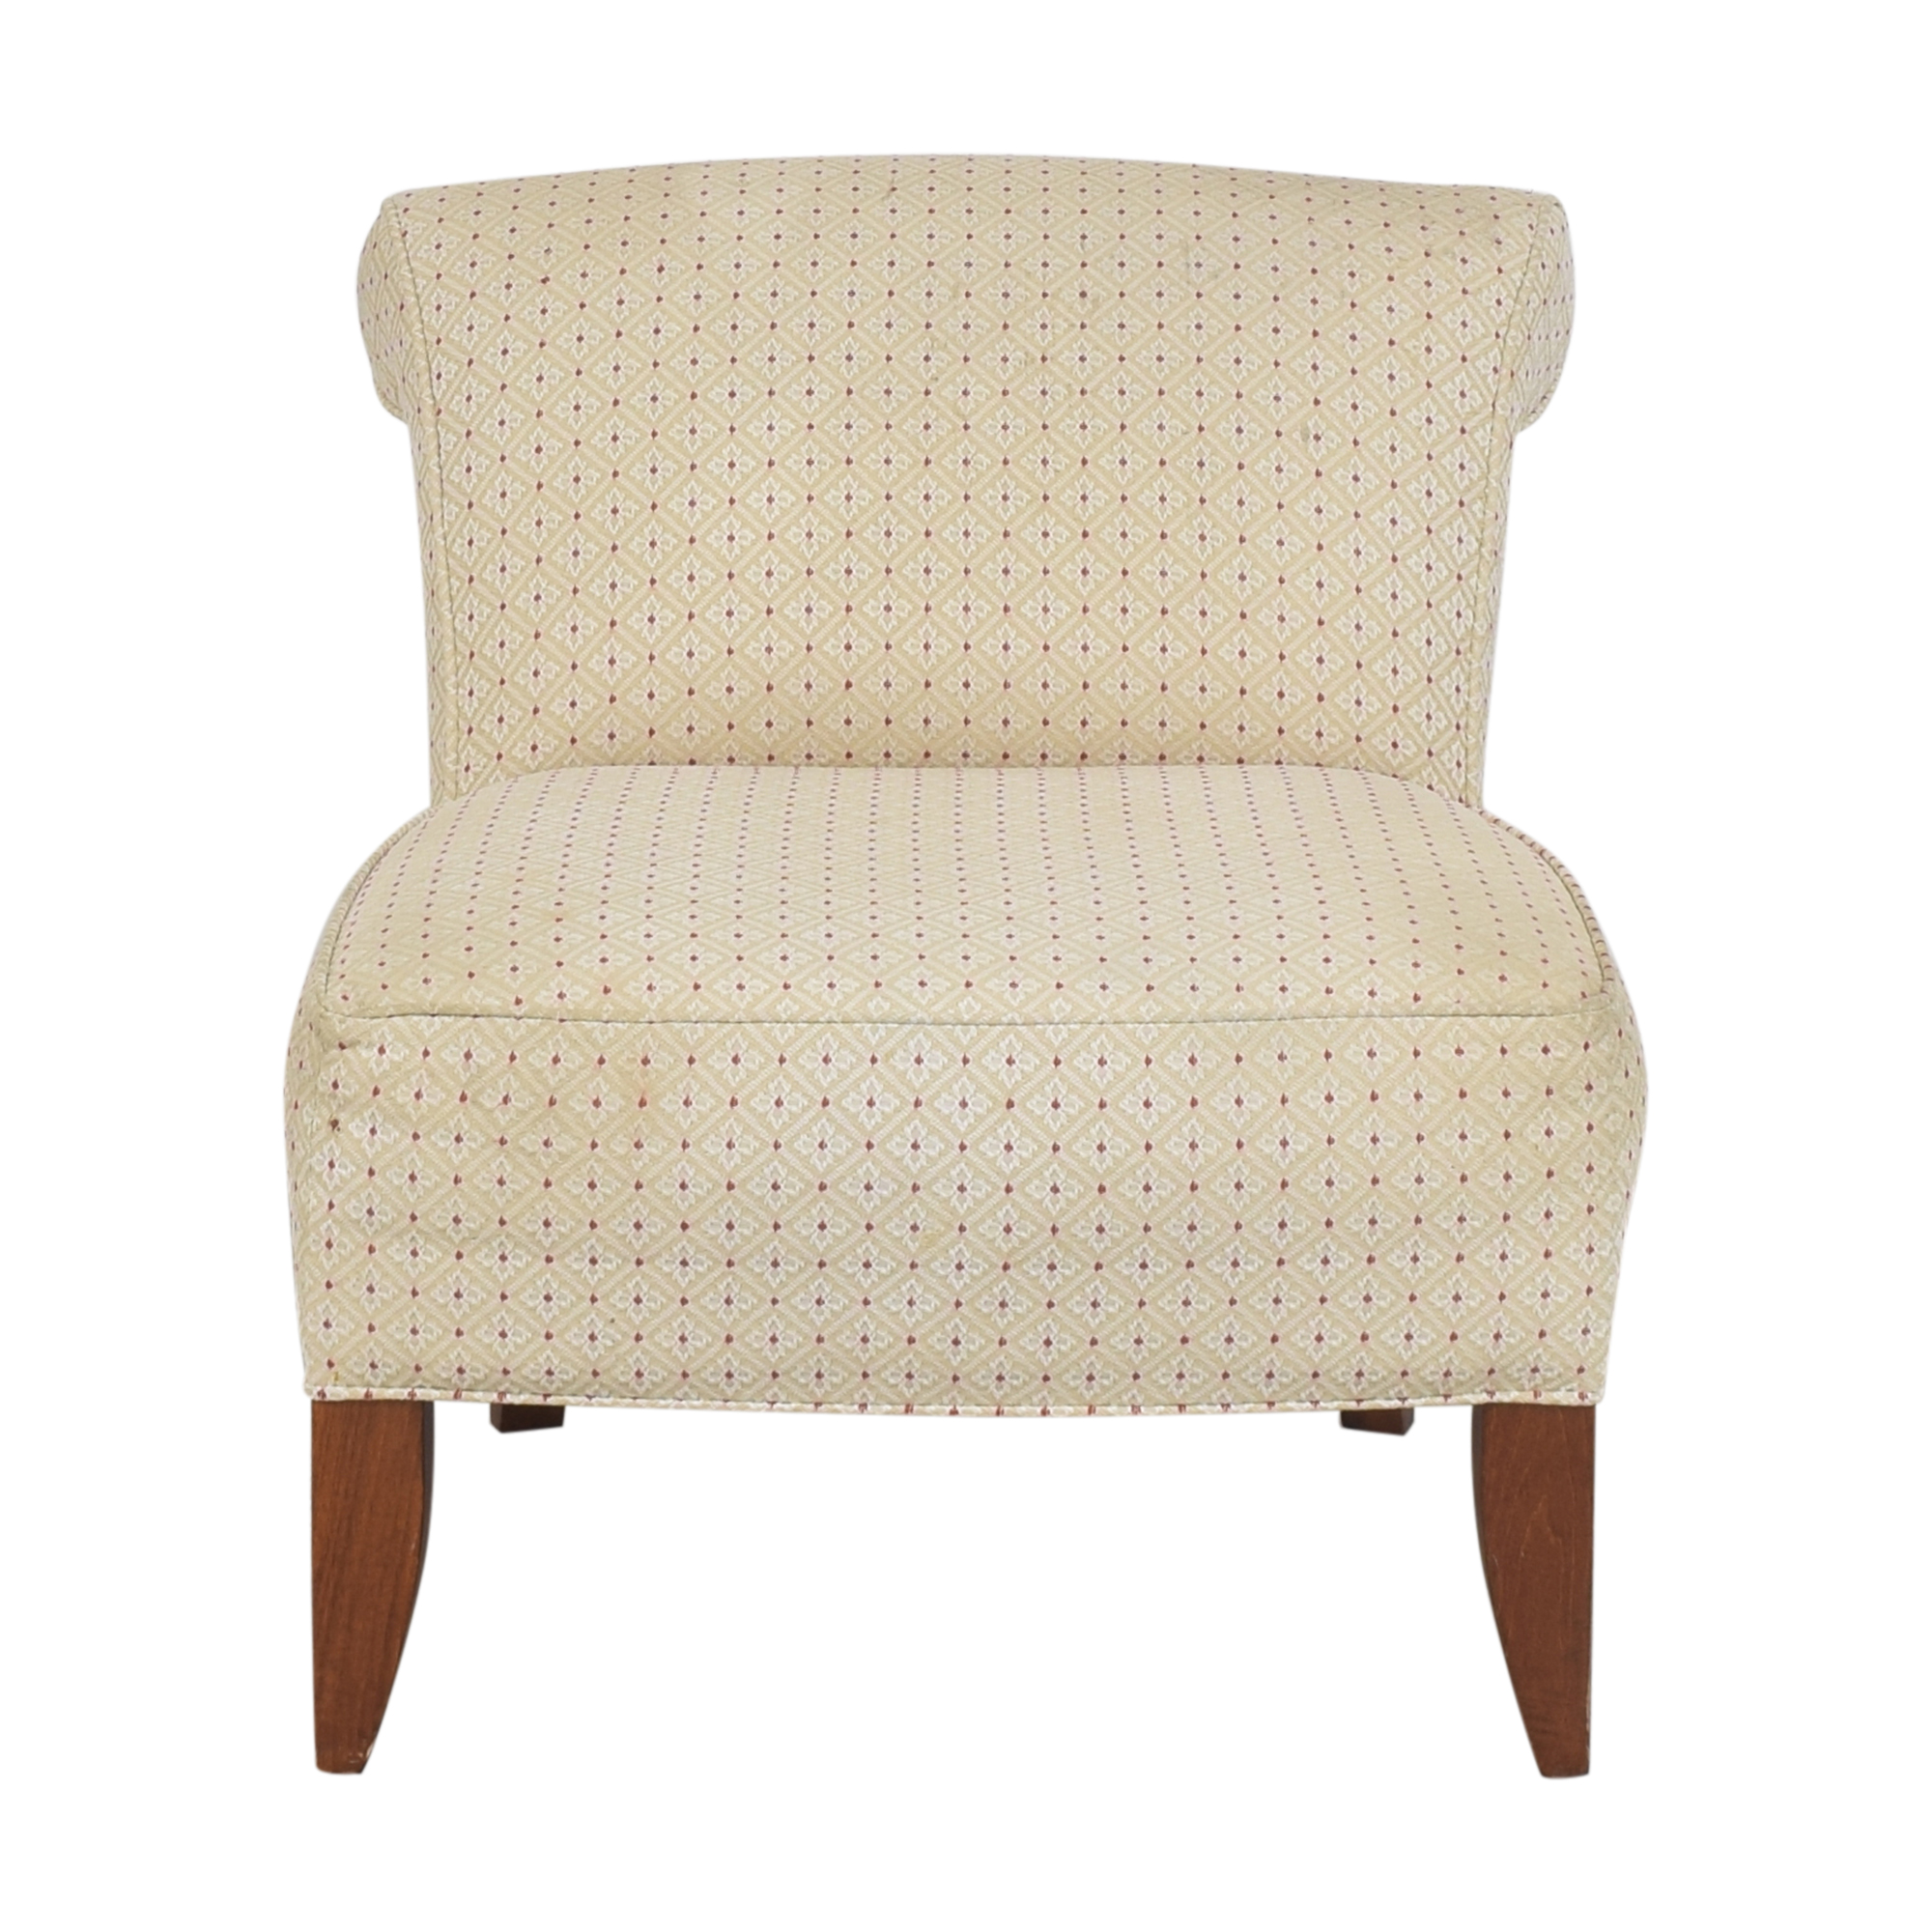 Ethan Allen Ethan Allen Slipper Chair pa